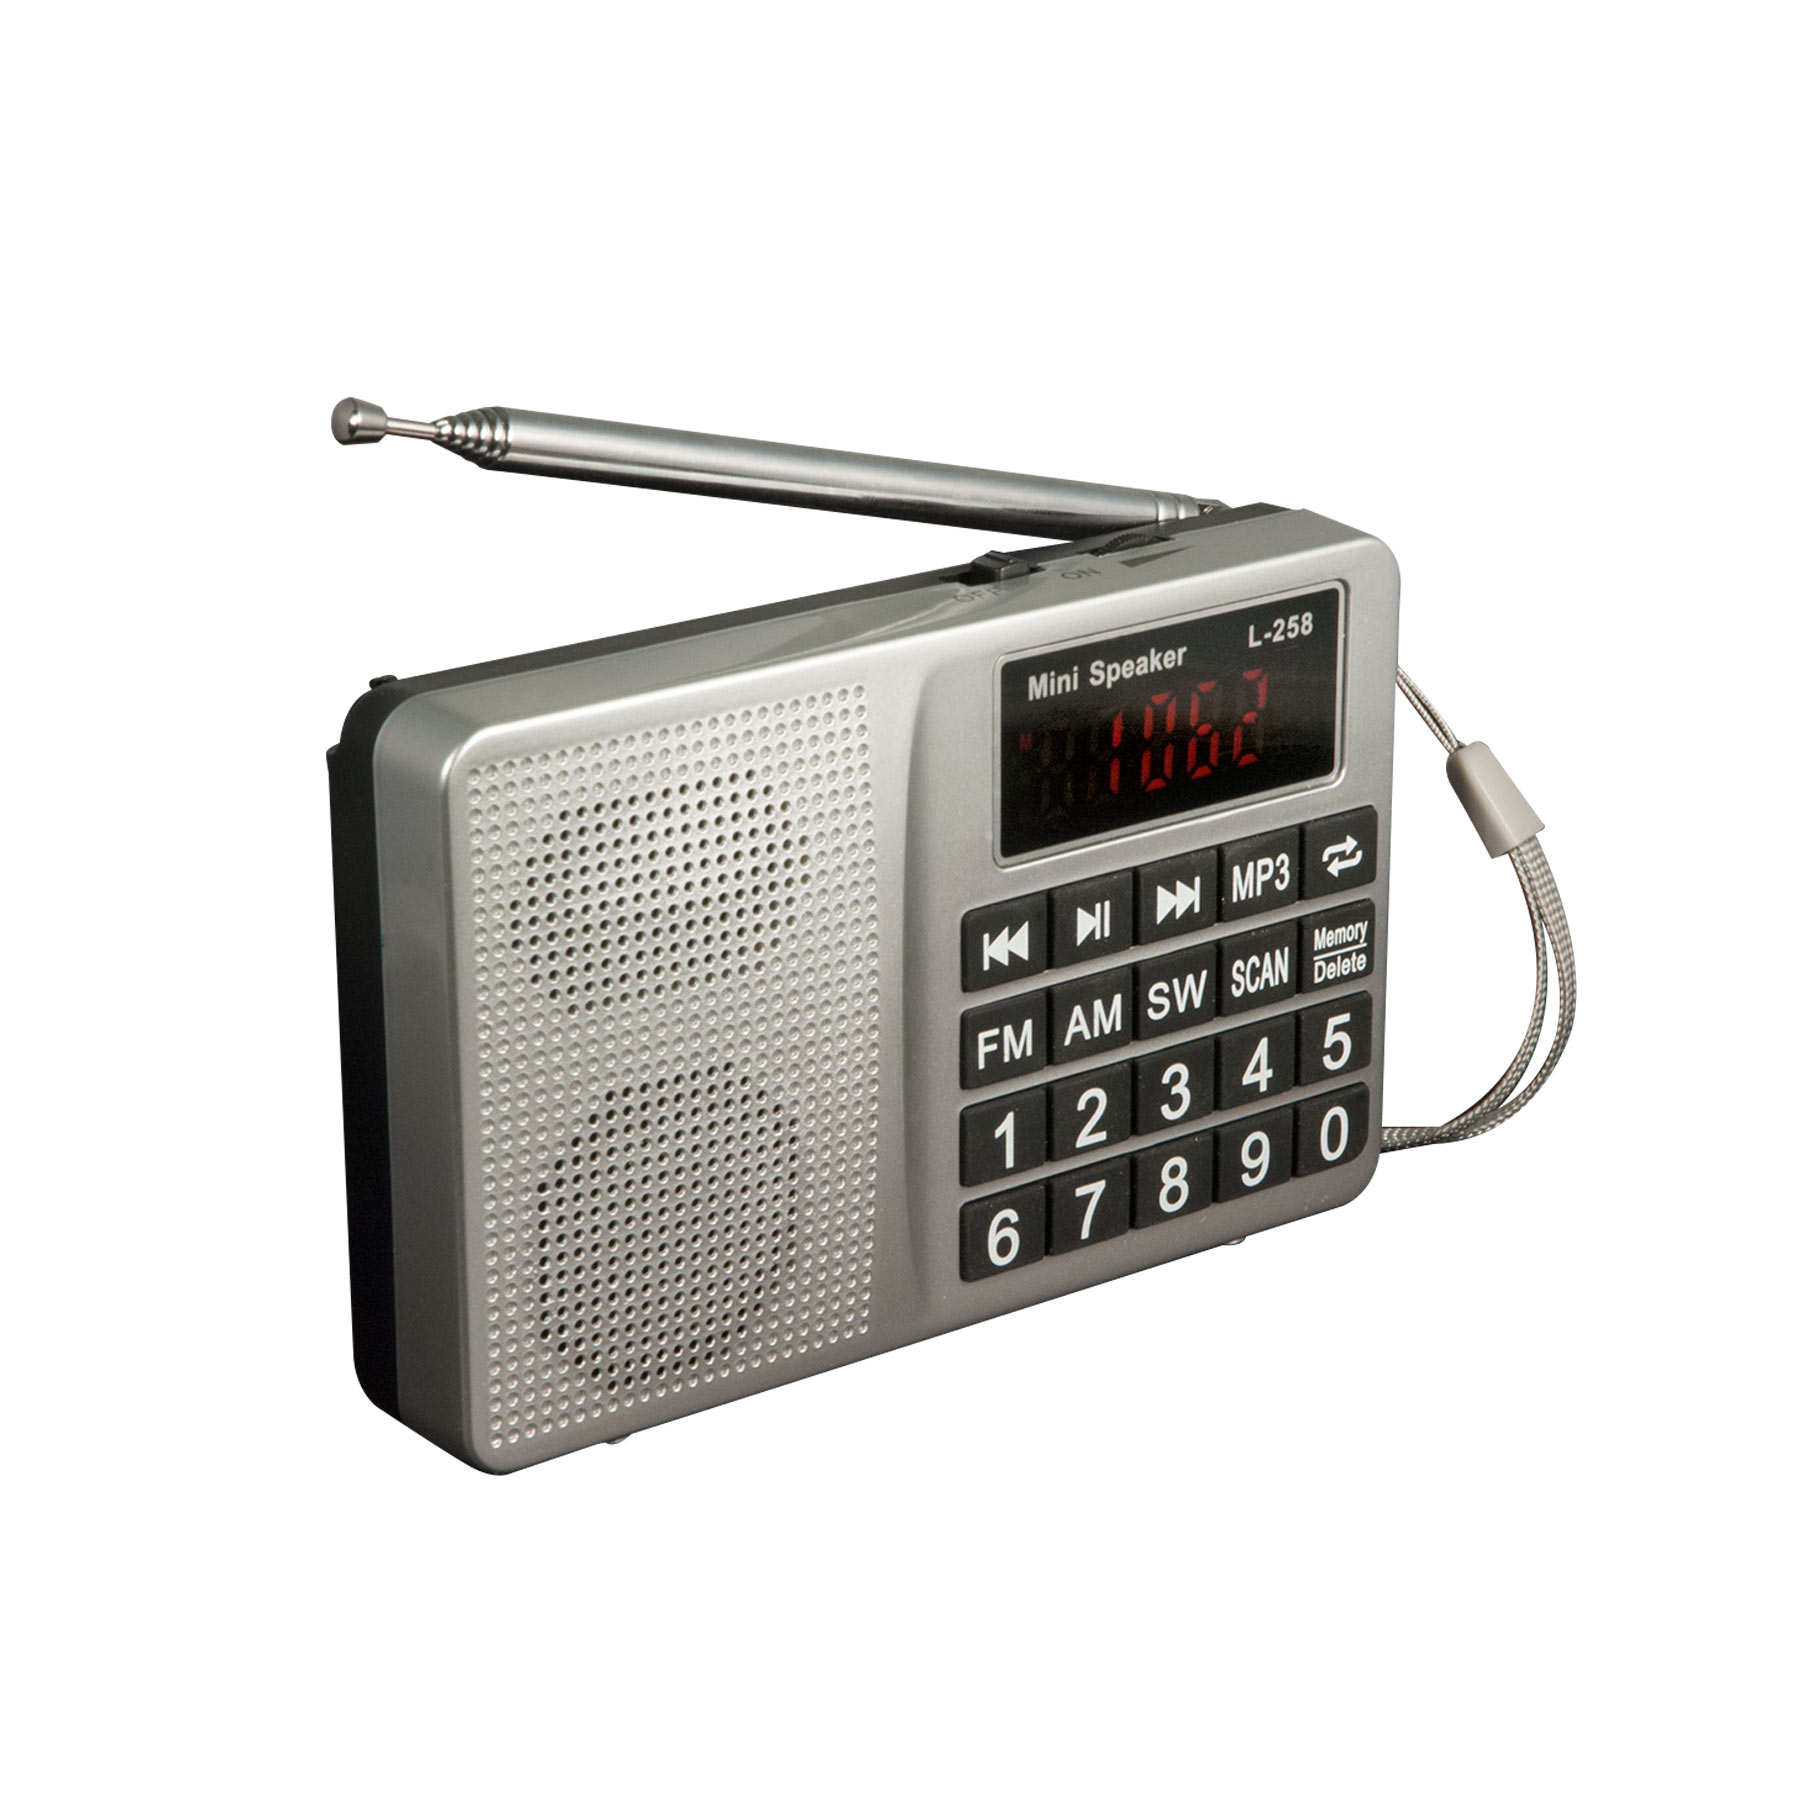 EZ FM AM SW Multiband Radio MP3 Speaker